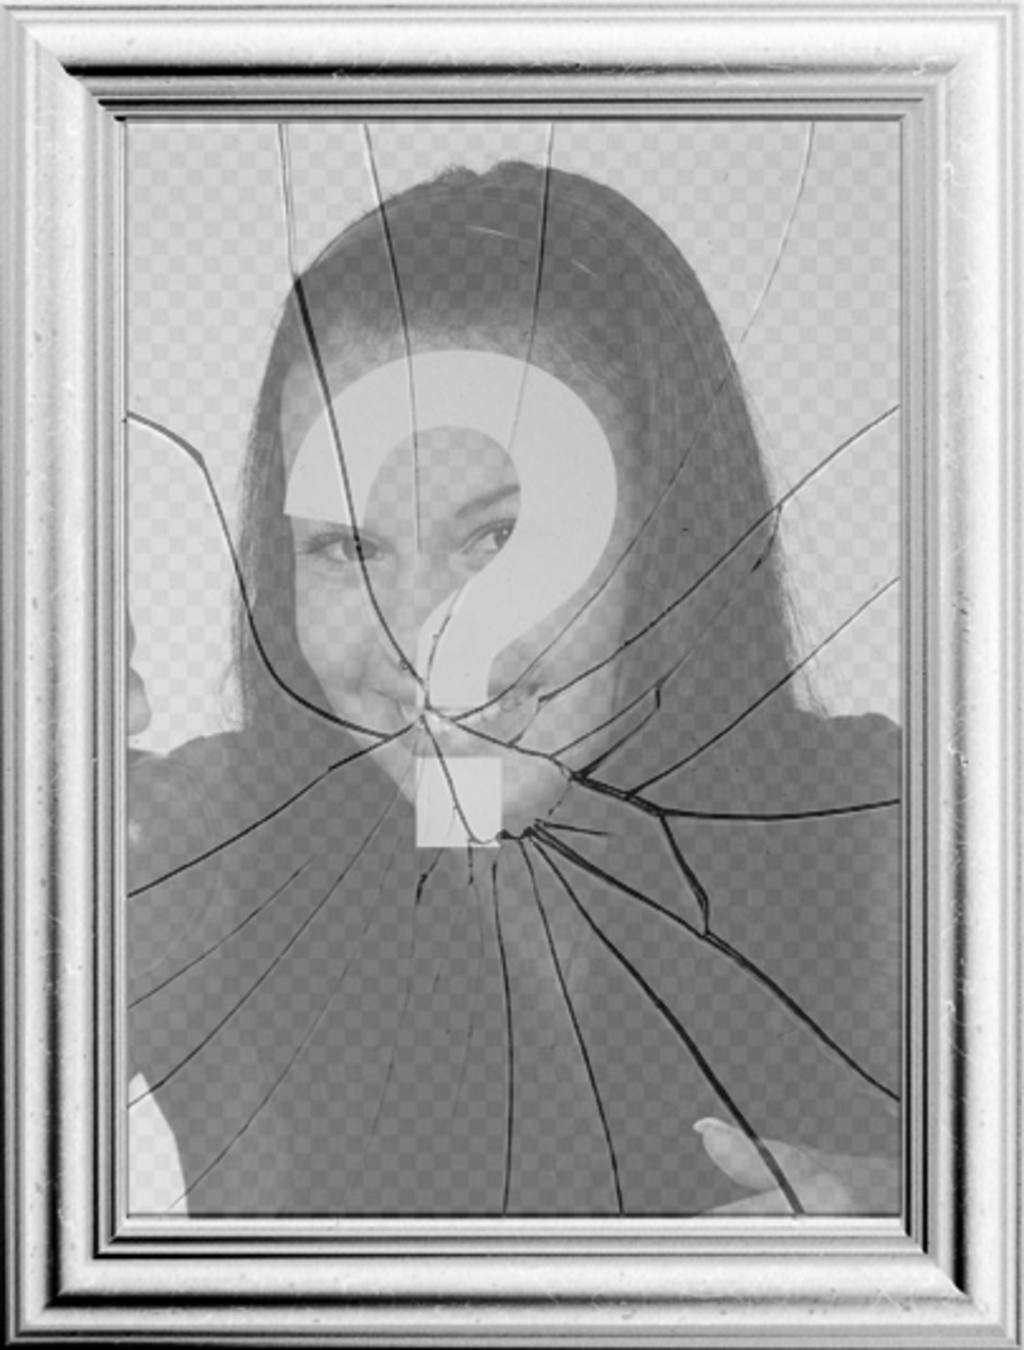 Digital picture frame, your image will be reflected in a broken mirror